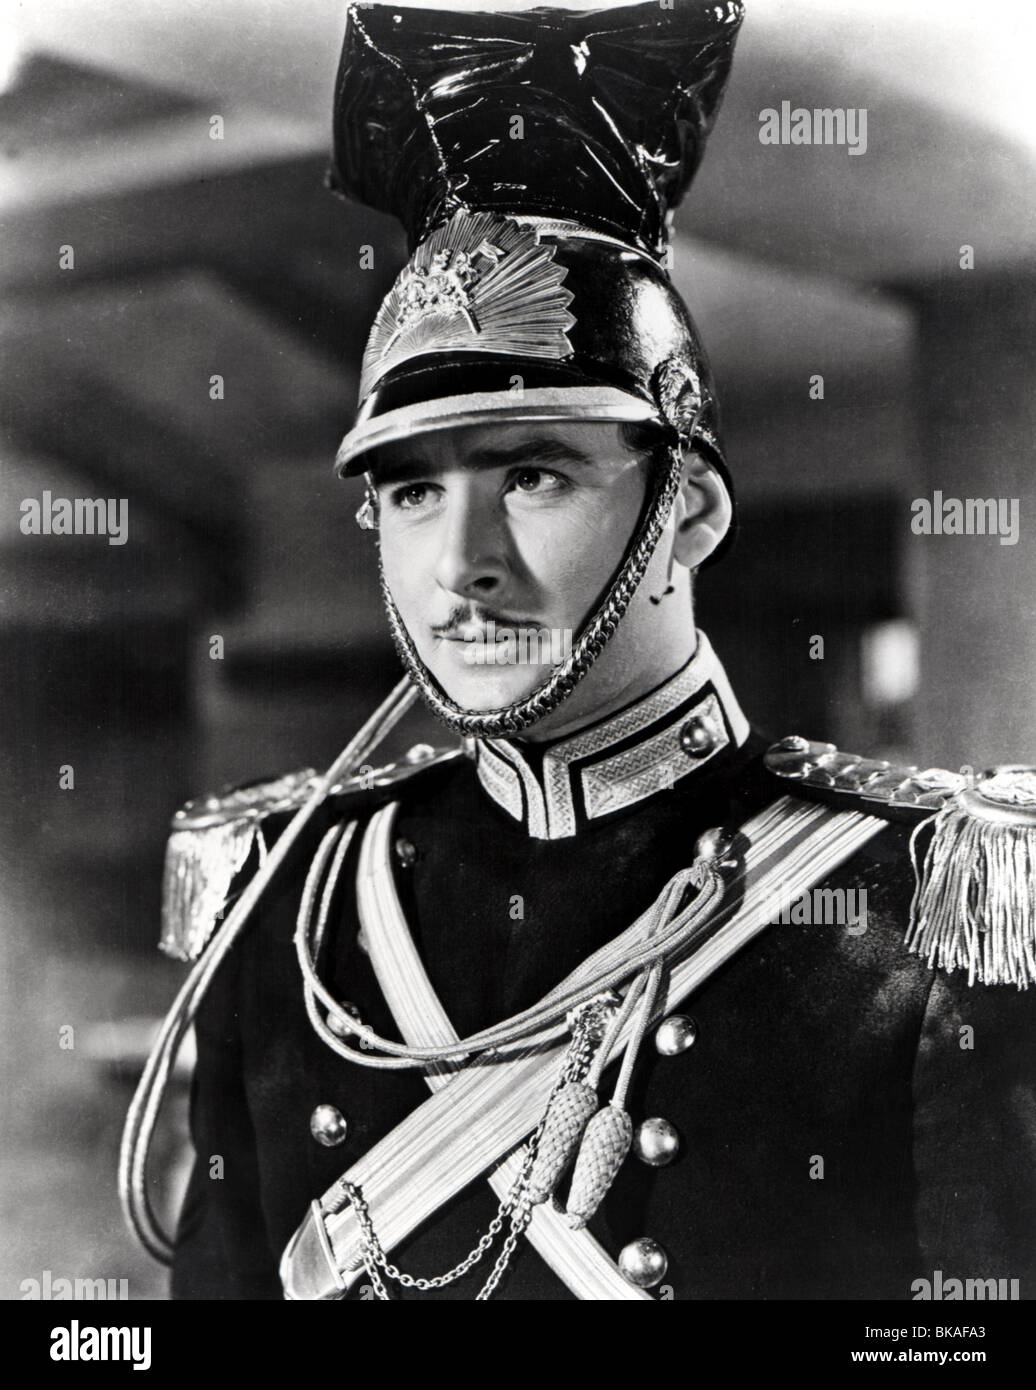 THE CHARGE OF THE LIGHT BRIGADE (1936) ERROL FLYNN CLB 012P - Stock Image